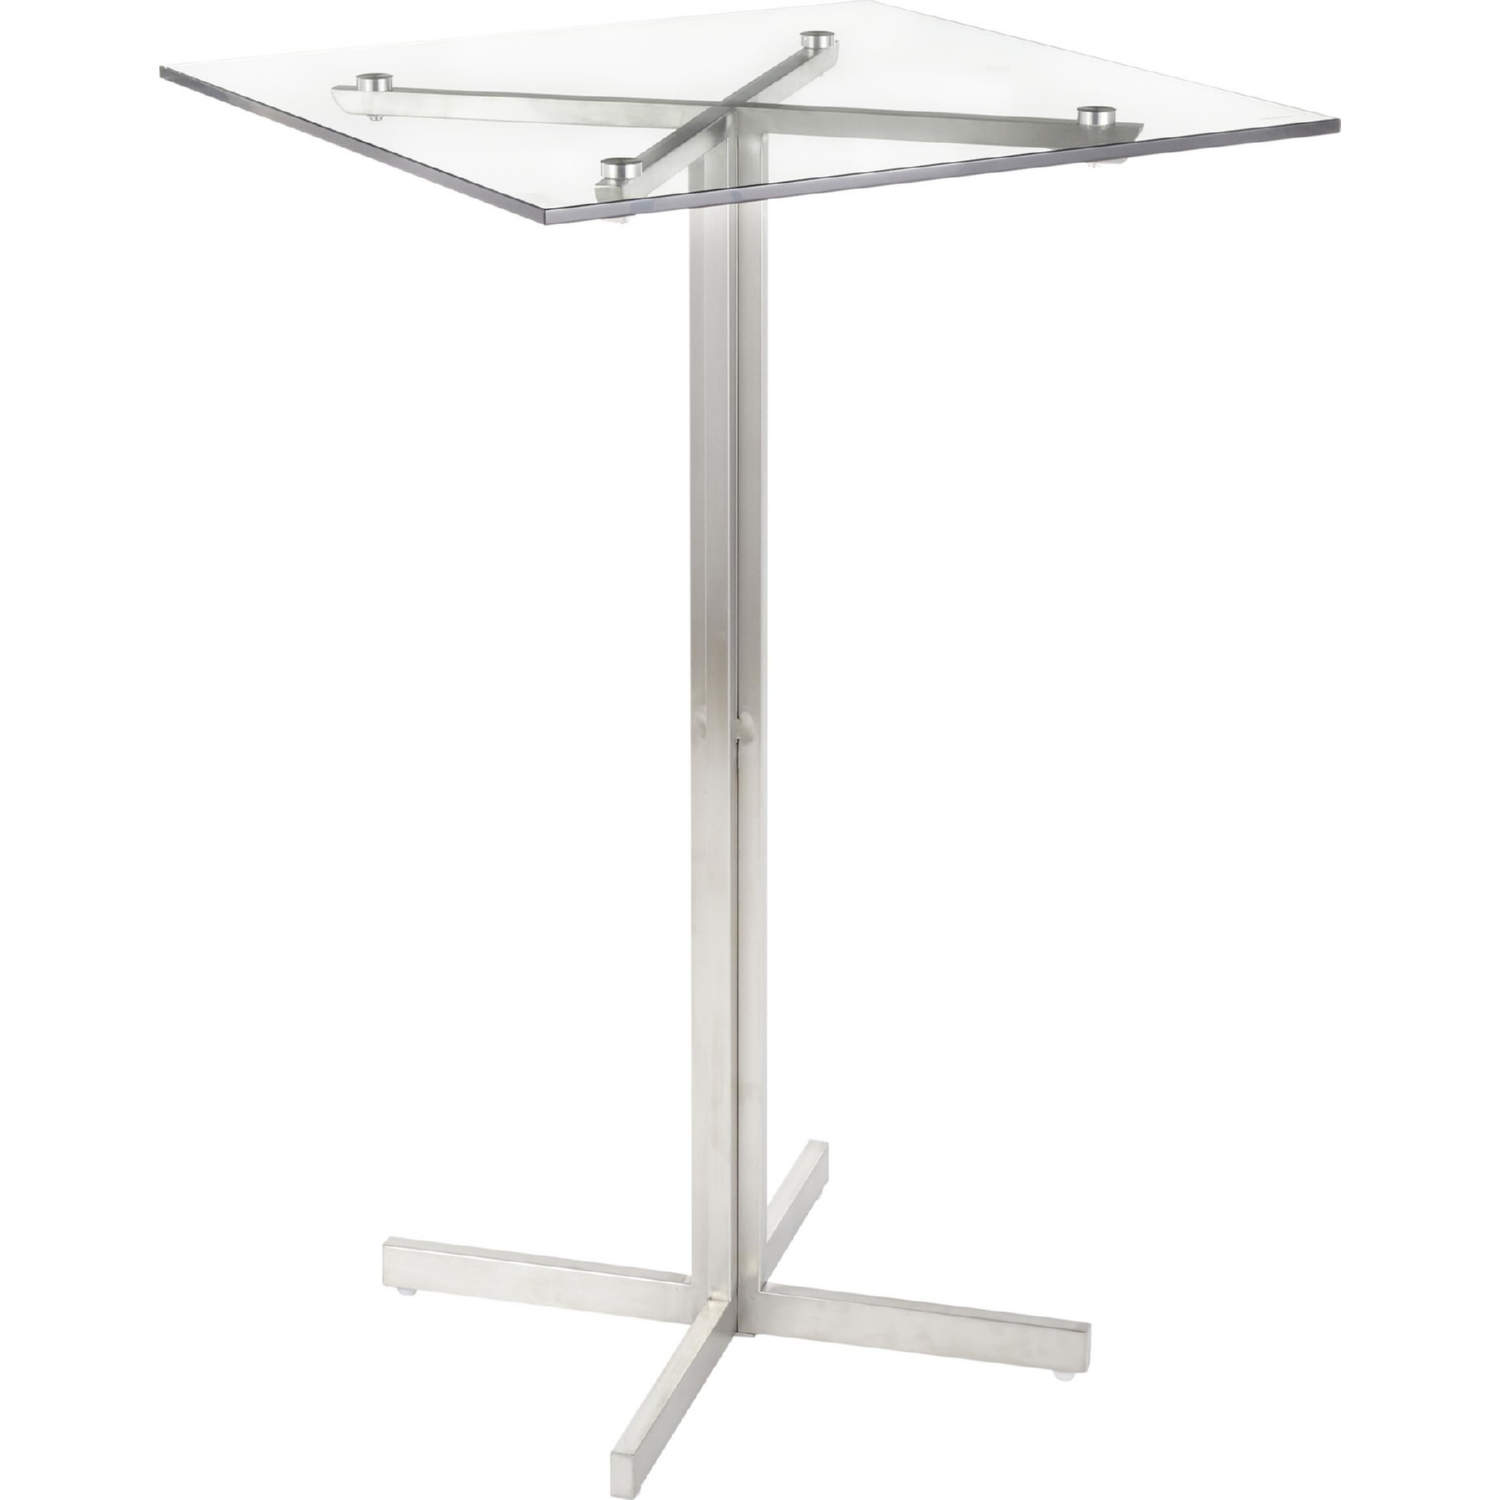 Fuji Square Bar Table In Stainless Steel W Clear Gl Top By Lumisource